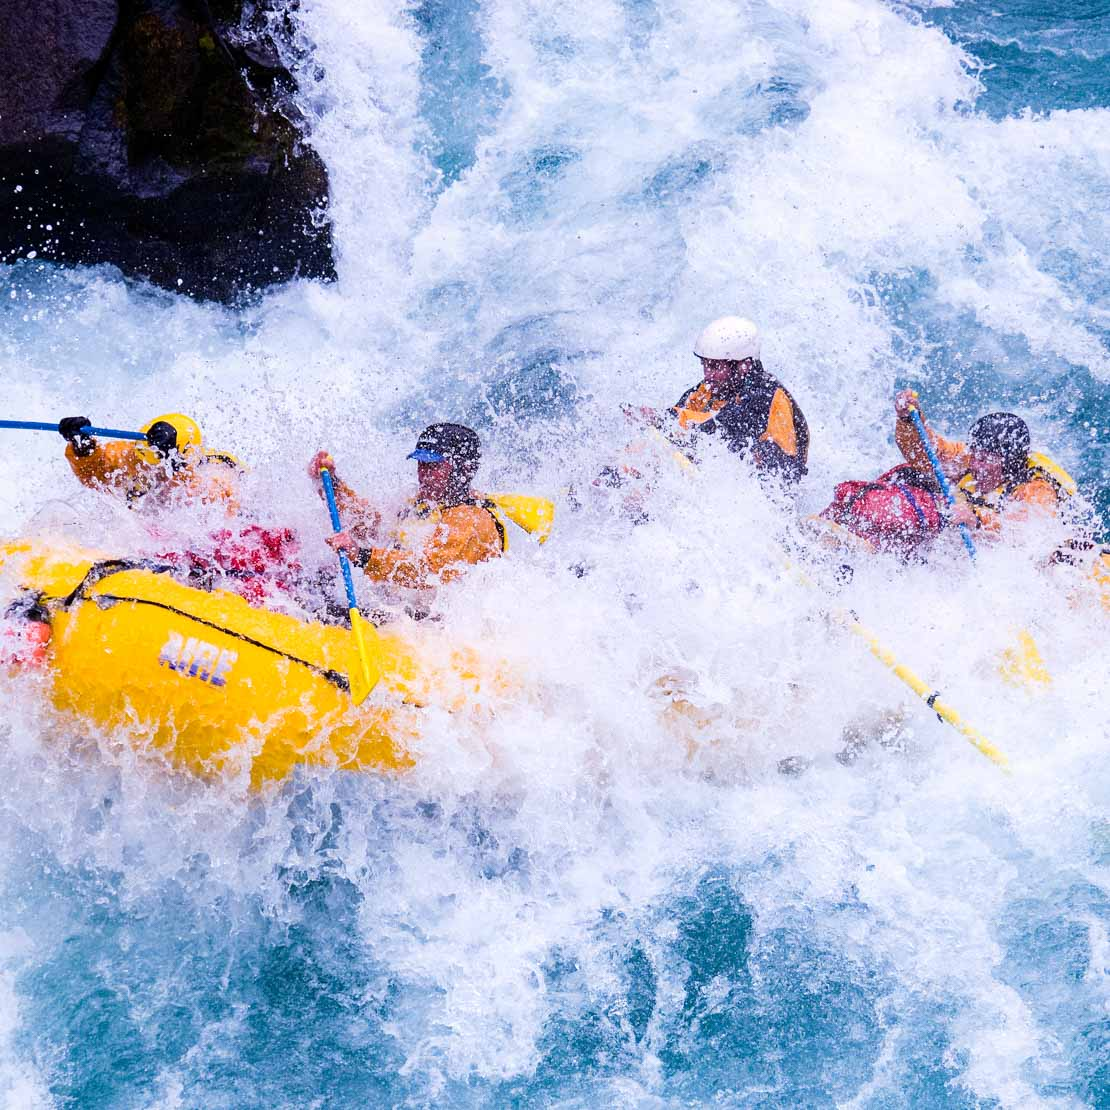 Bachelor Bacholerette Whitewater Rafting